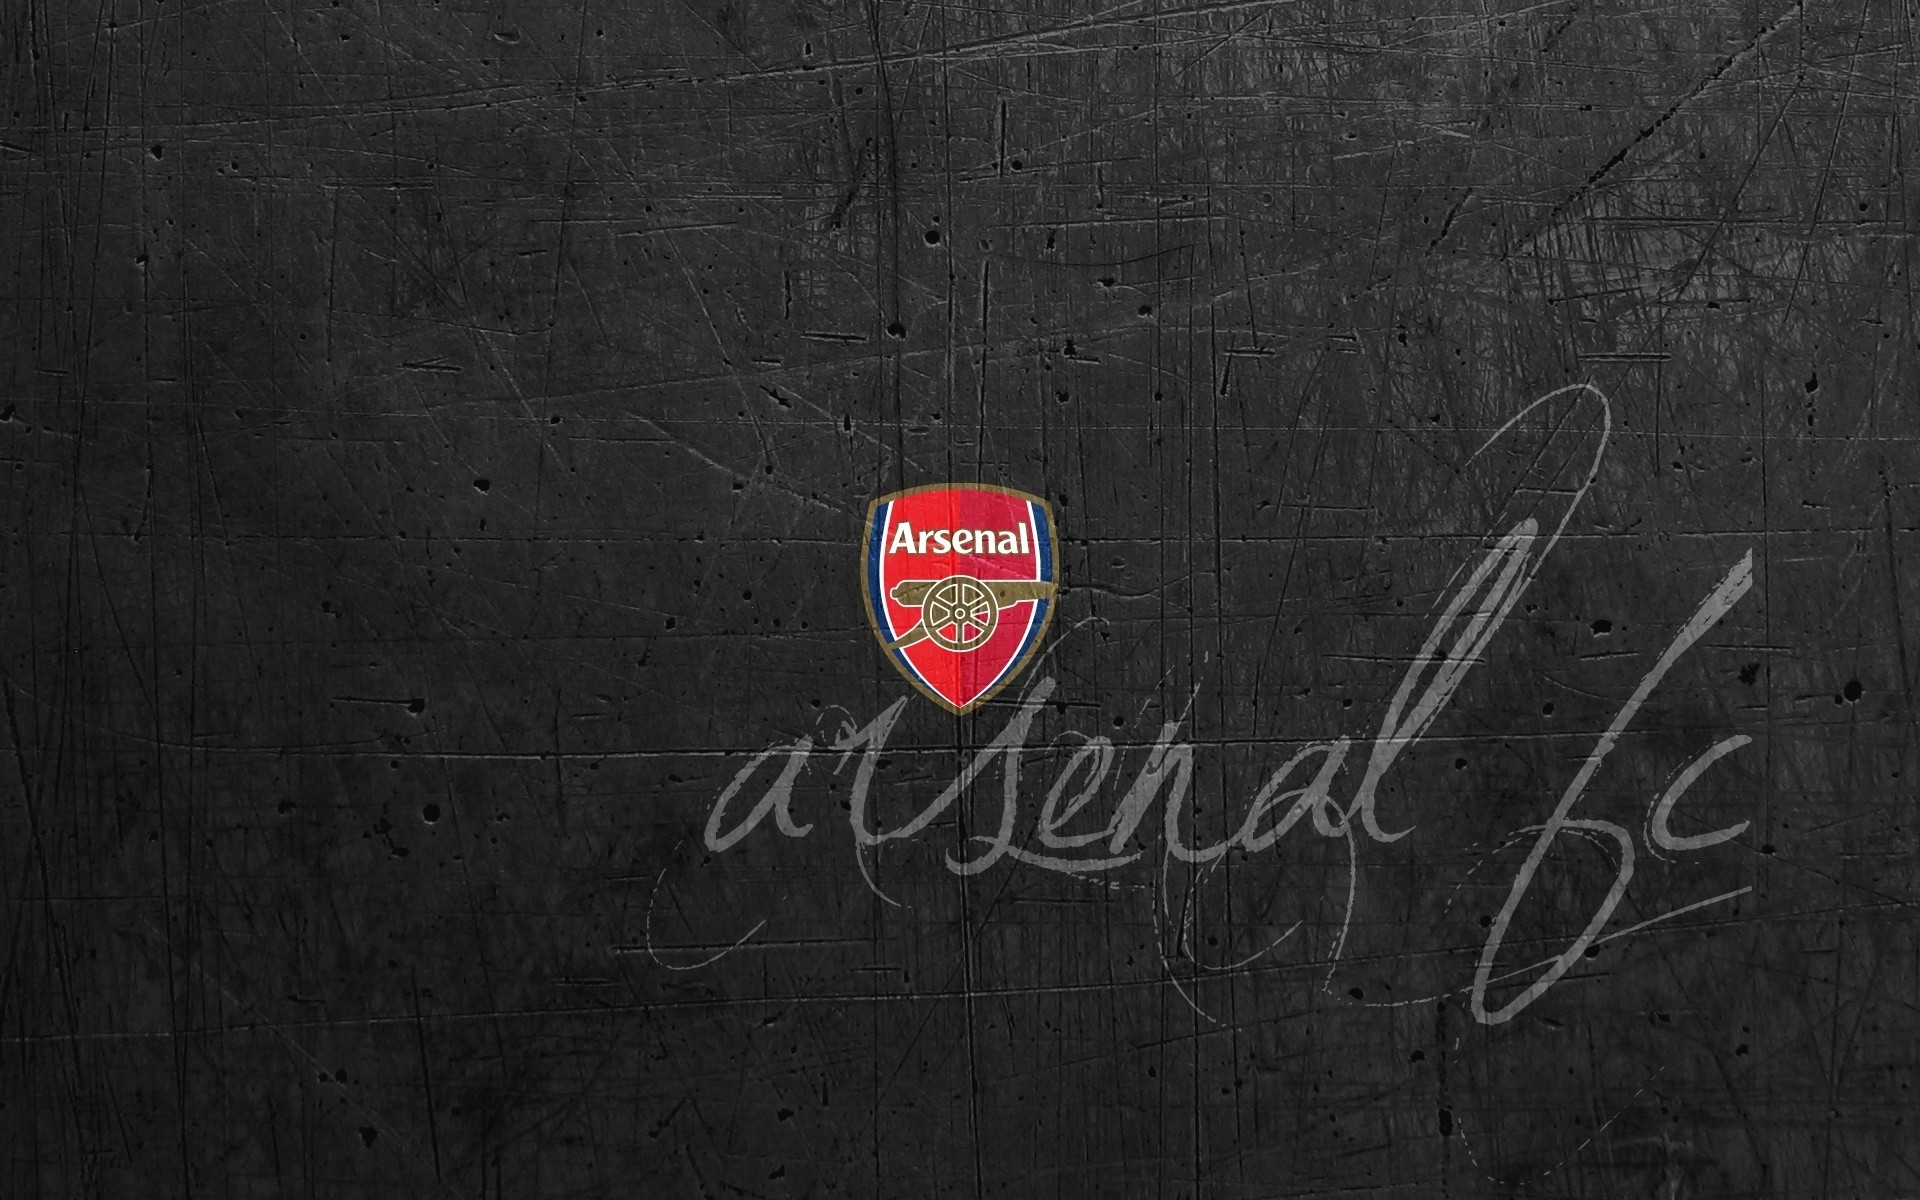 Arsenal HD Wallpapers for Desktop iPhone iPad and Android 1920x1200